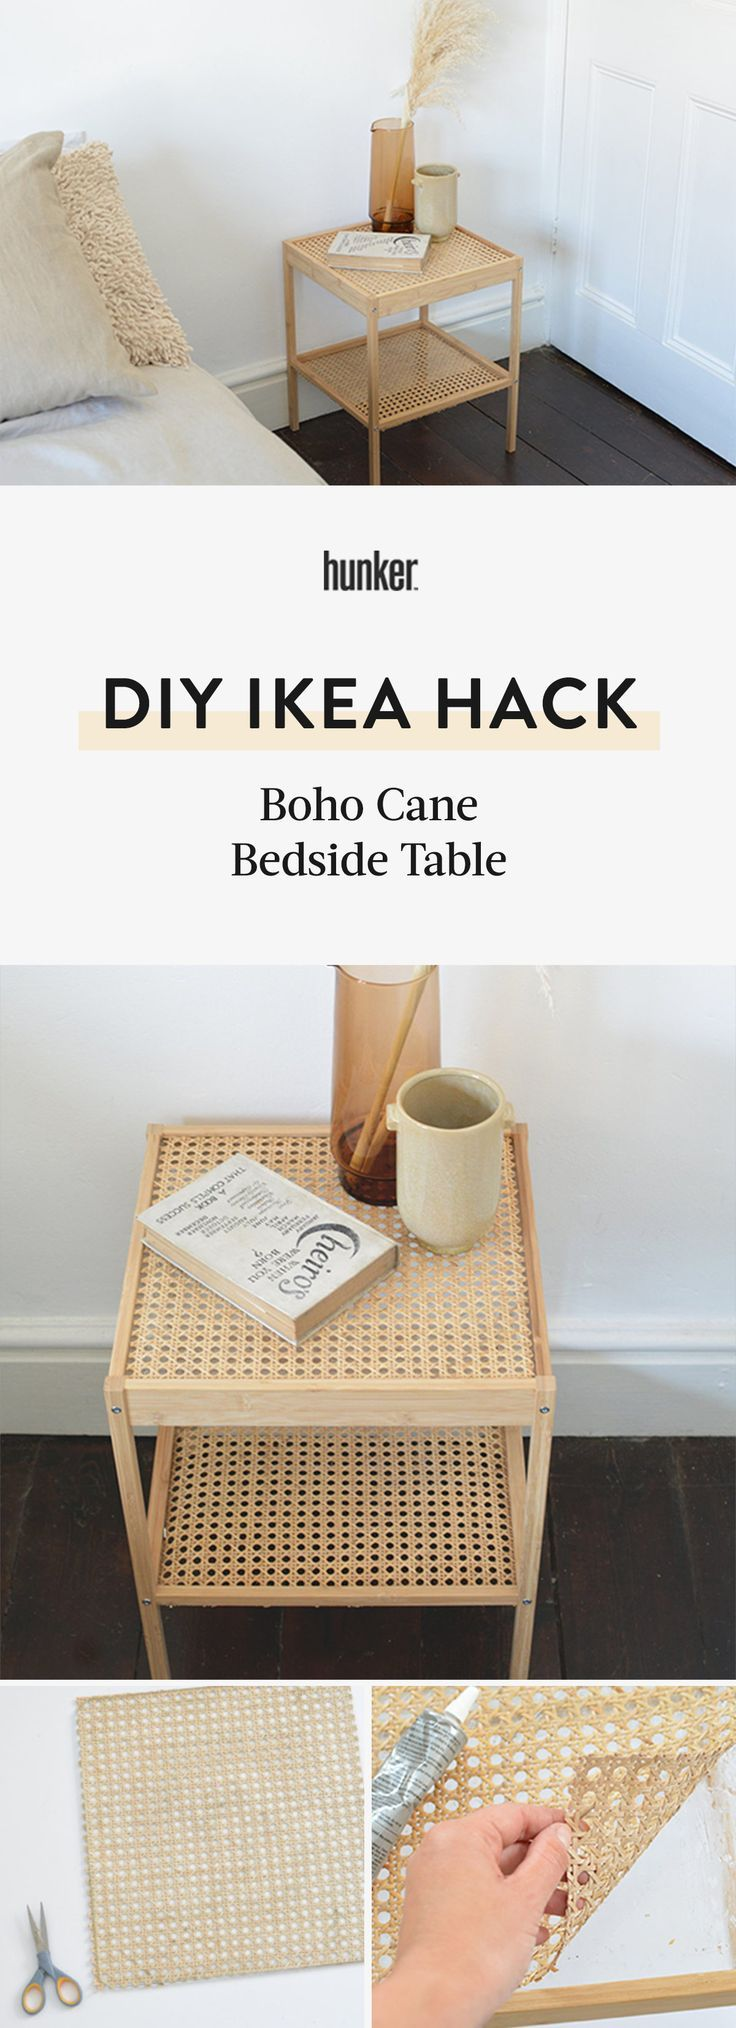 Photo of From Blah Table to Boho Cuteness Using Cane | Hunker